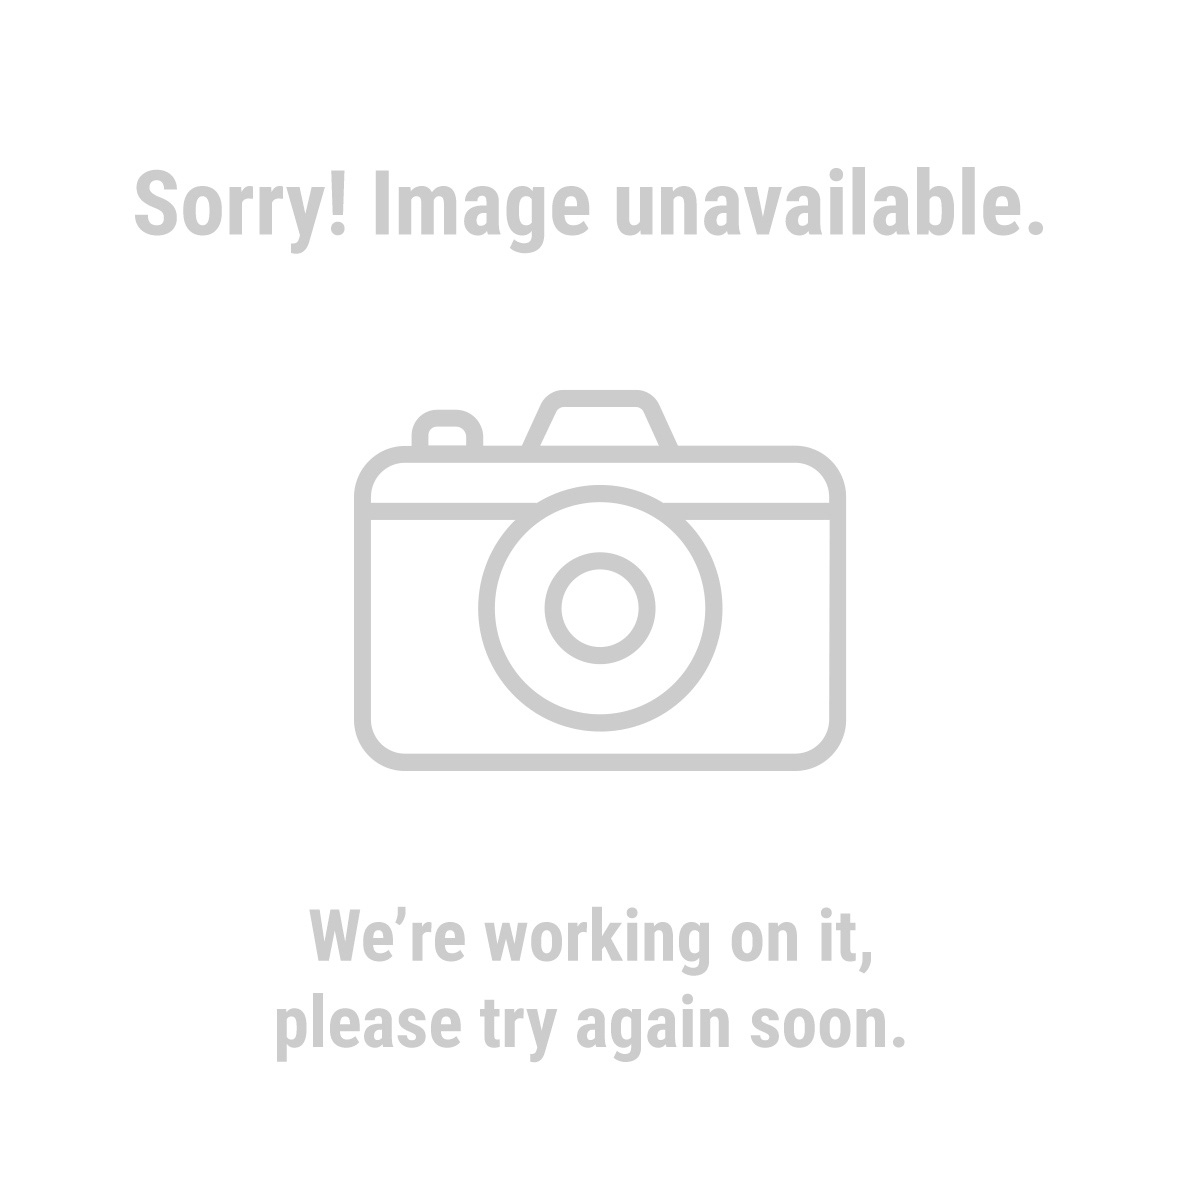 Chicago Electric Power Tools 63290 7-1/4 in. 12 Amp Heavy Duty Circular Saw With Laser Guide System